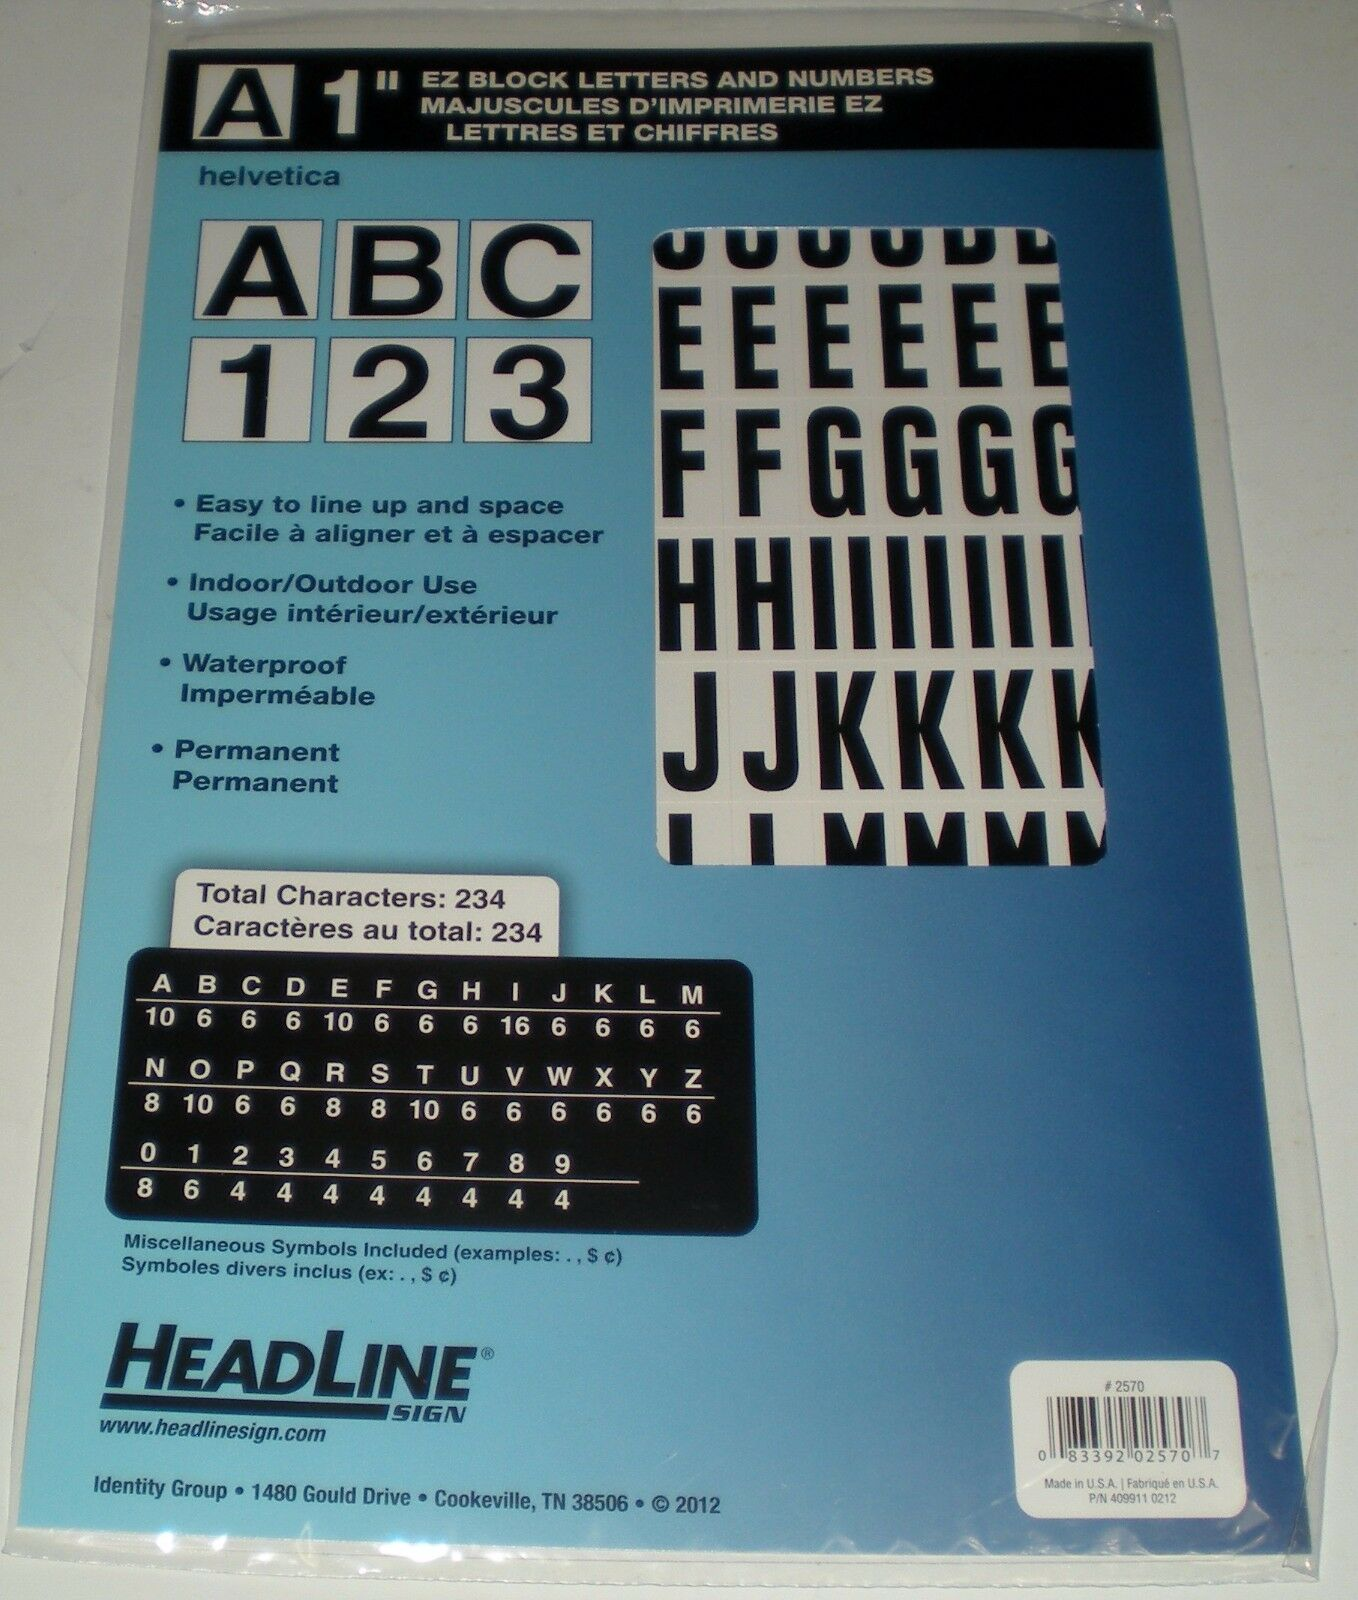 HEADLINE Sign 2570 Stick-on EZ Block Letters and Numbers Black on ...